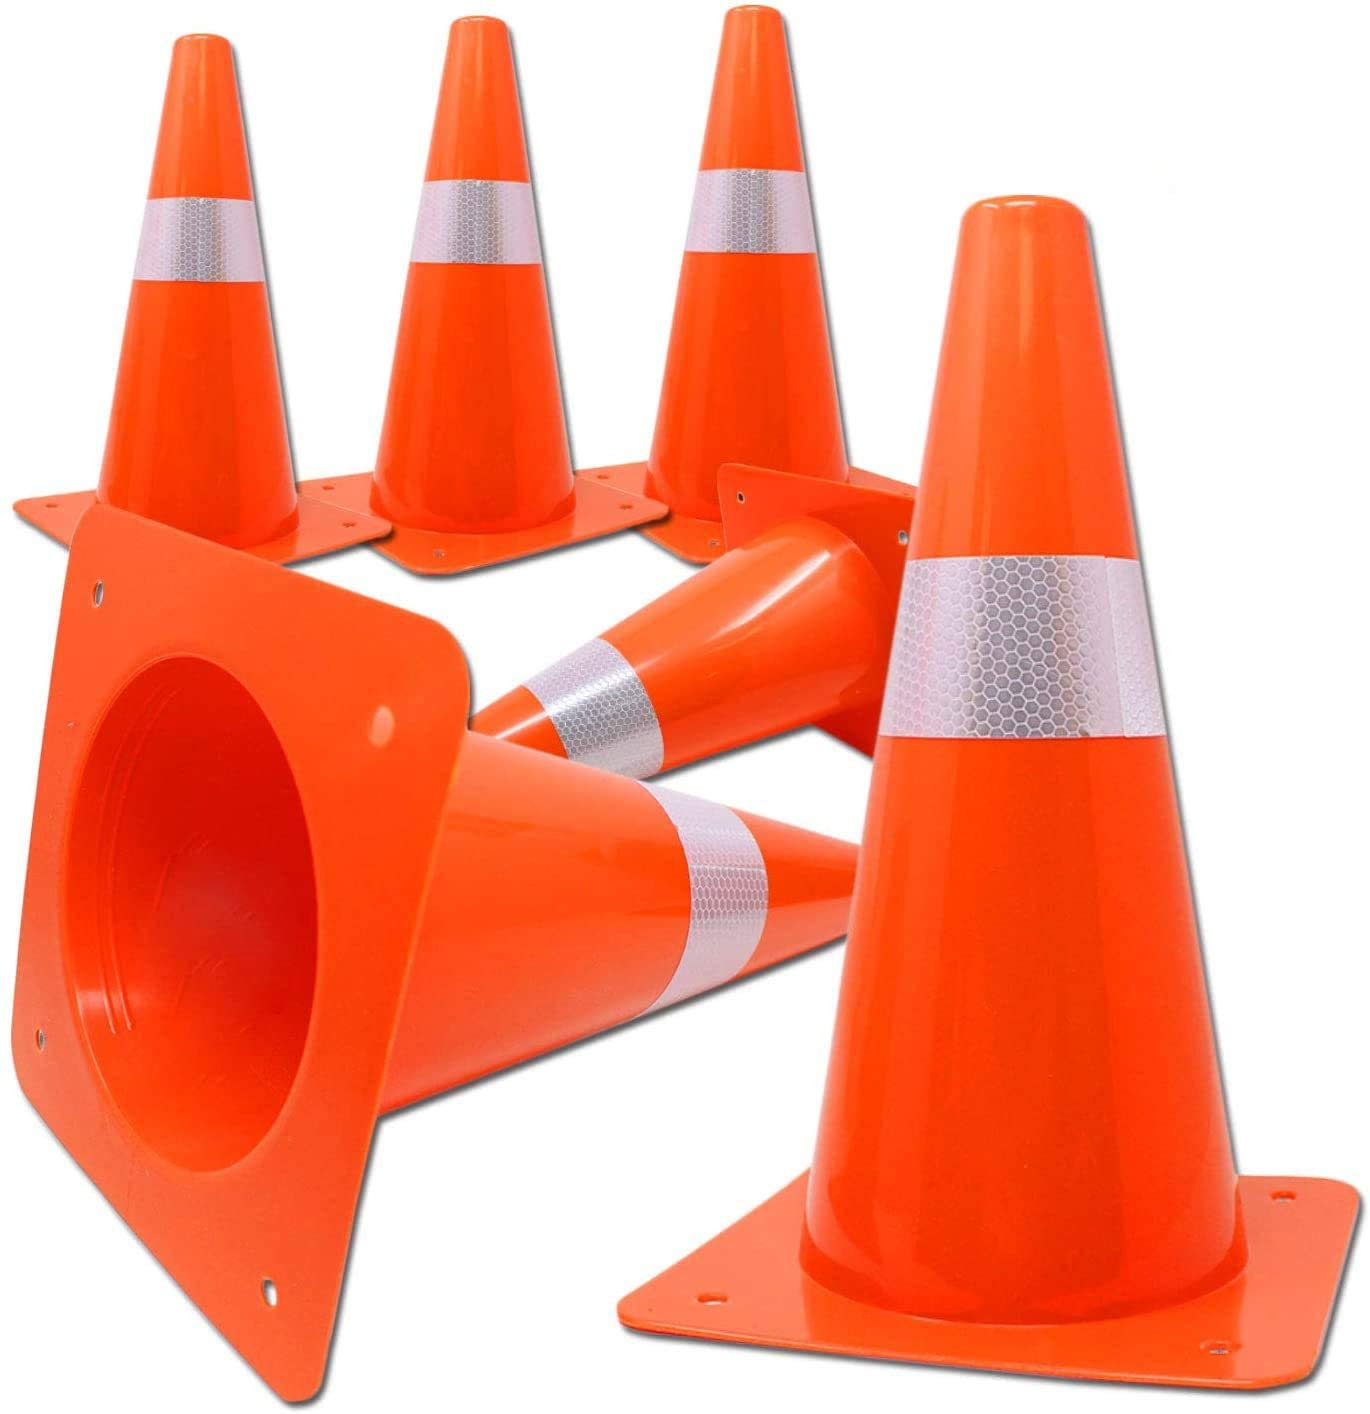 Orange Safety Cones with 12 inch Reflective Stripe | Traffic, Sports, Soccer, Parking, Warning Cones for Professionals, Kids (6 Pack)